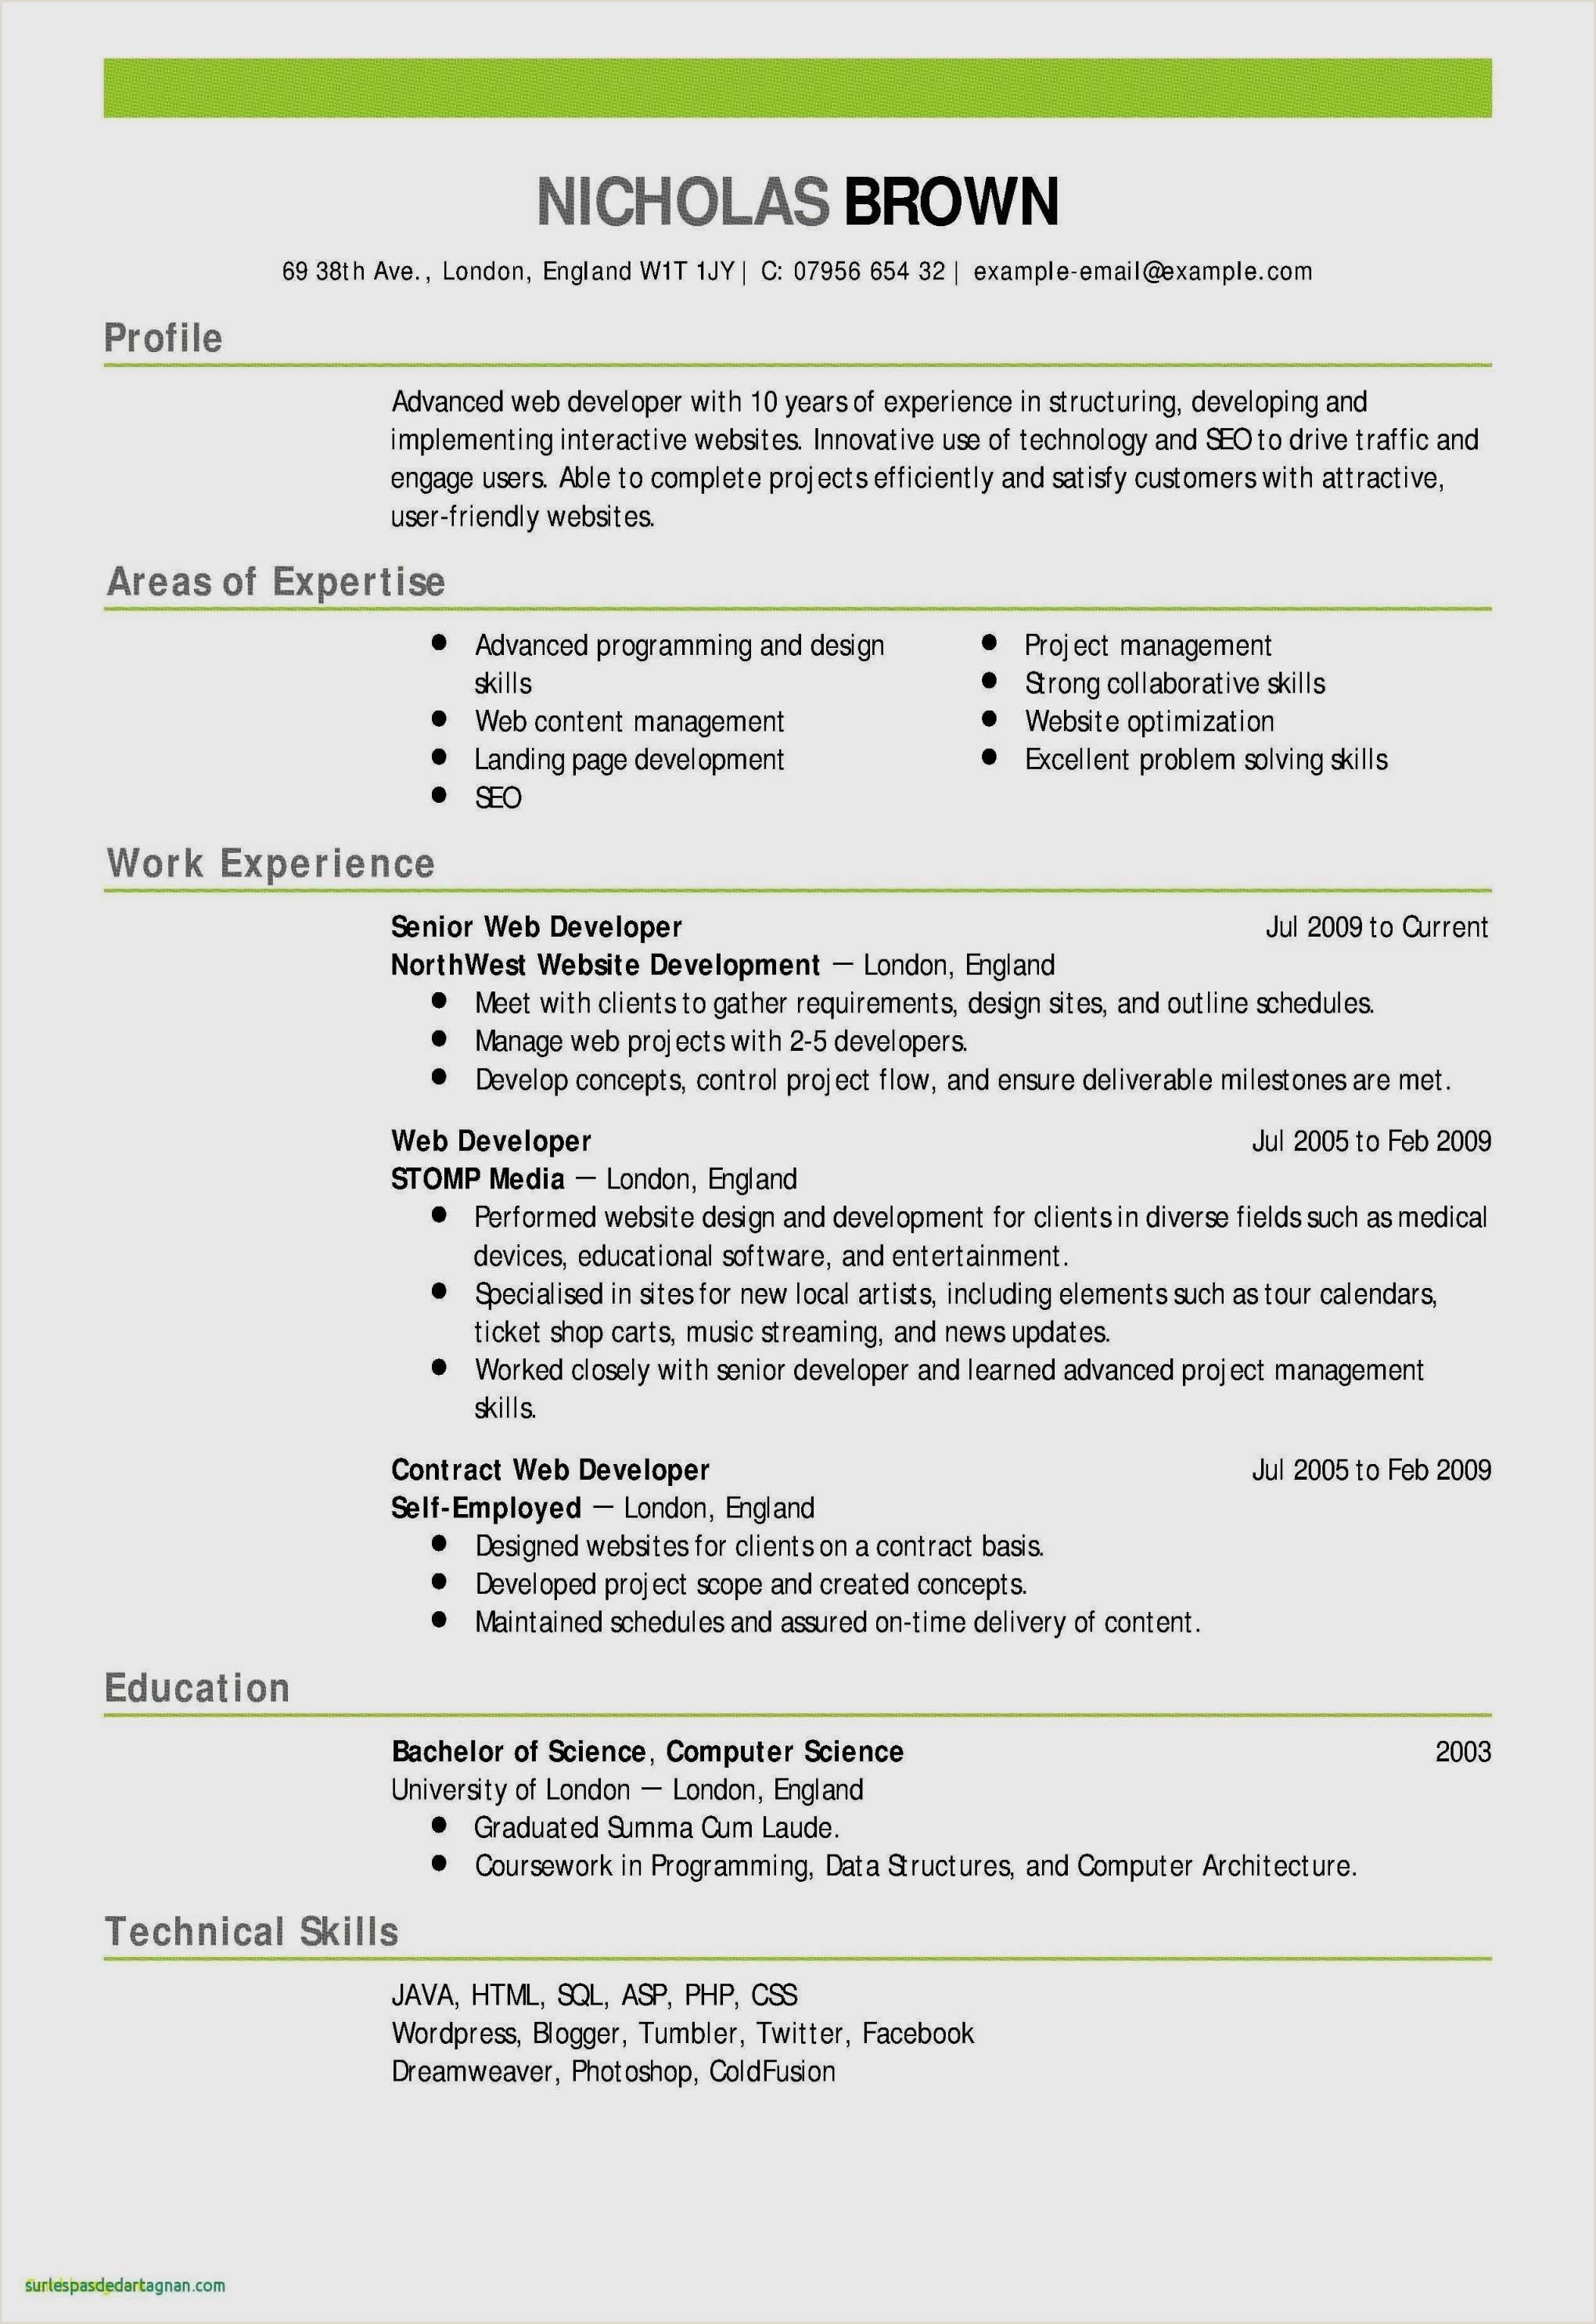 Professional Cv format for Hotel Industry Elegant How to Write A Hospitality Resume